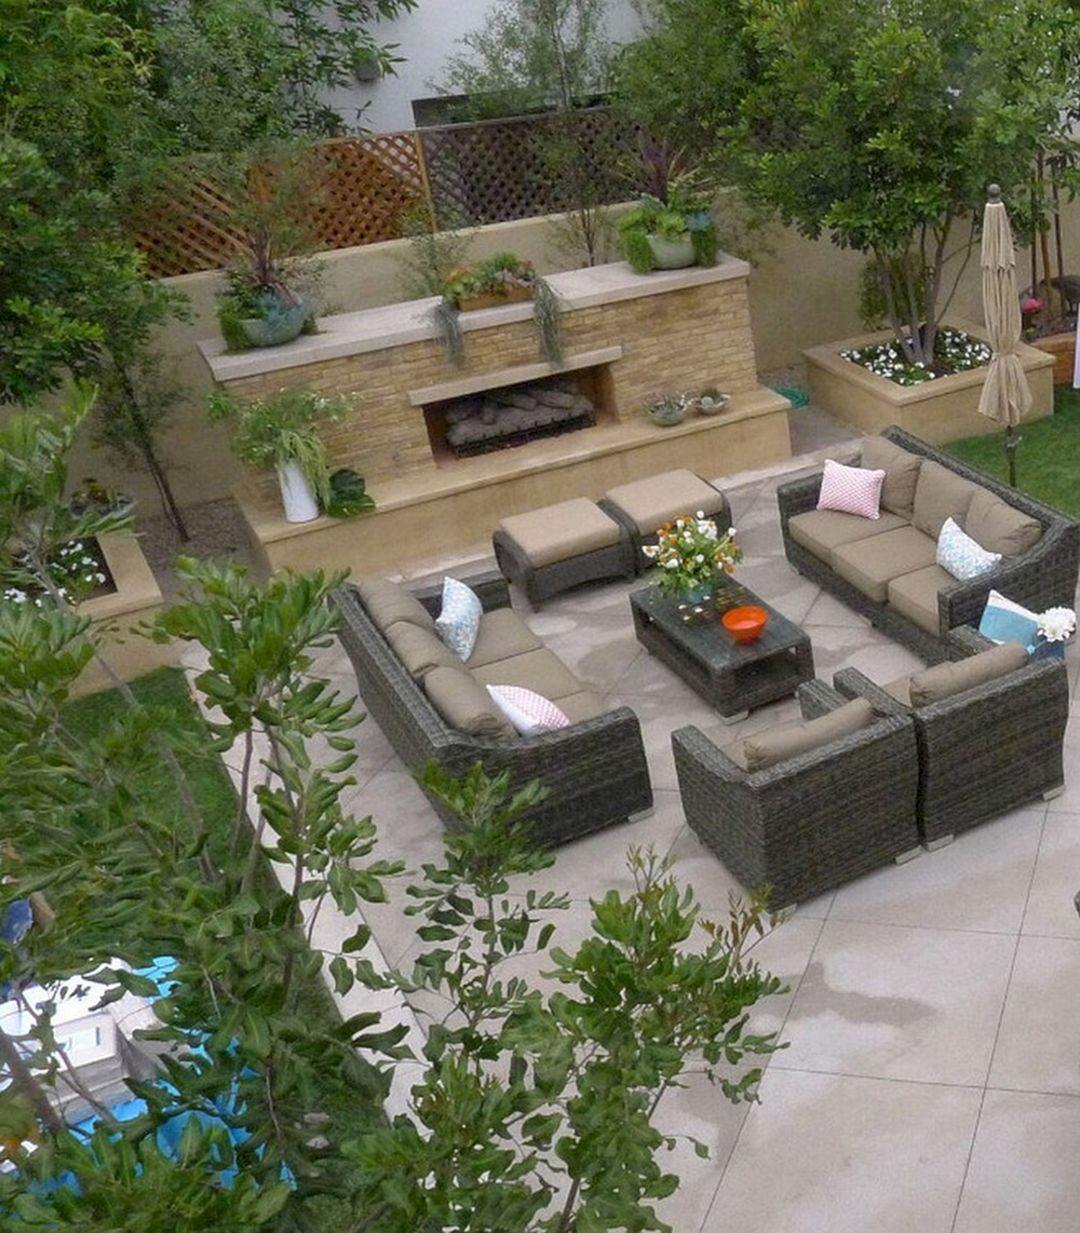 26+ Super Cool Backyards Design For Your Perfect Home Garden